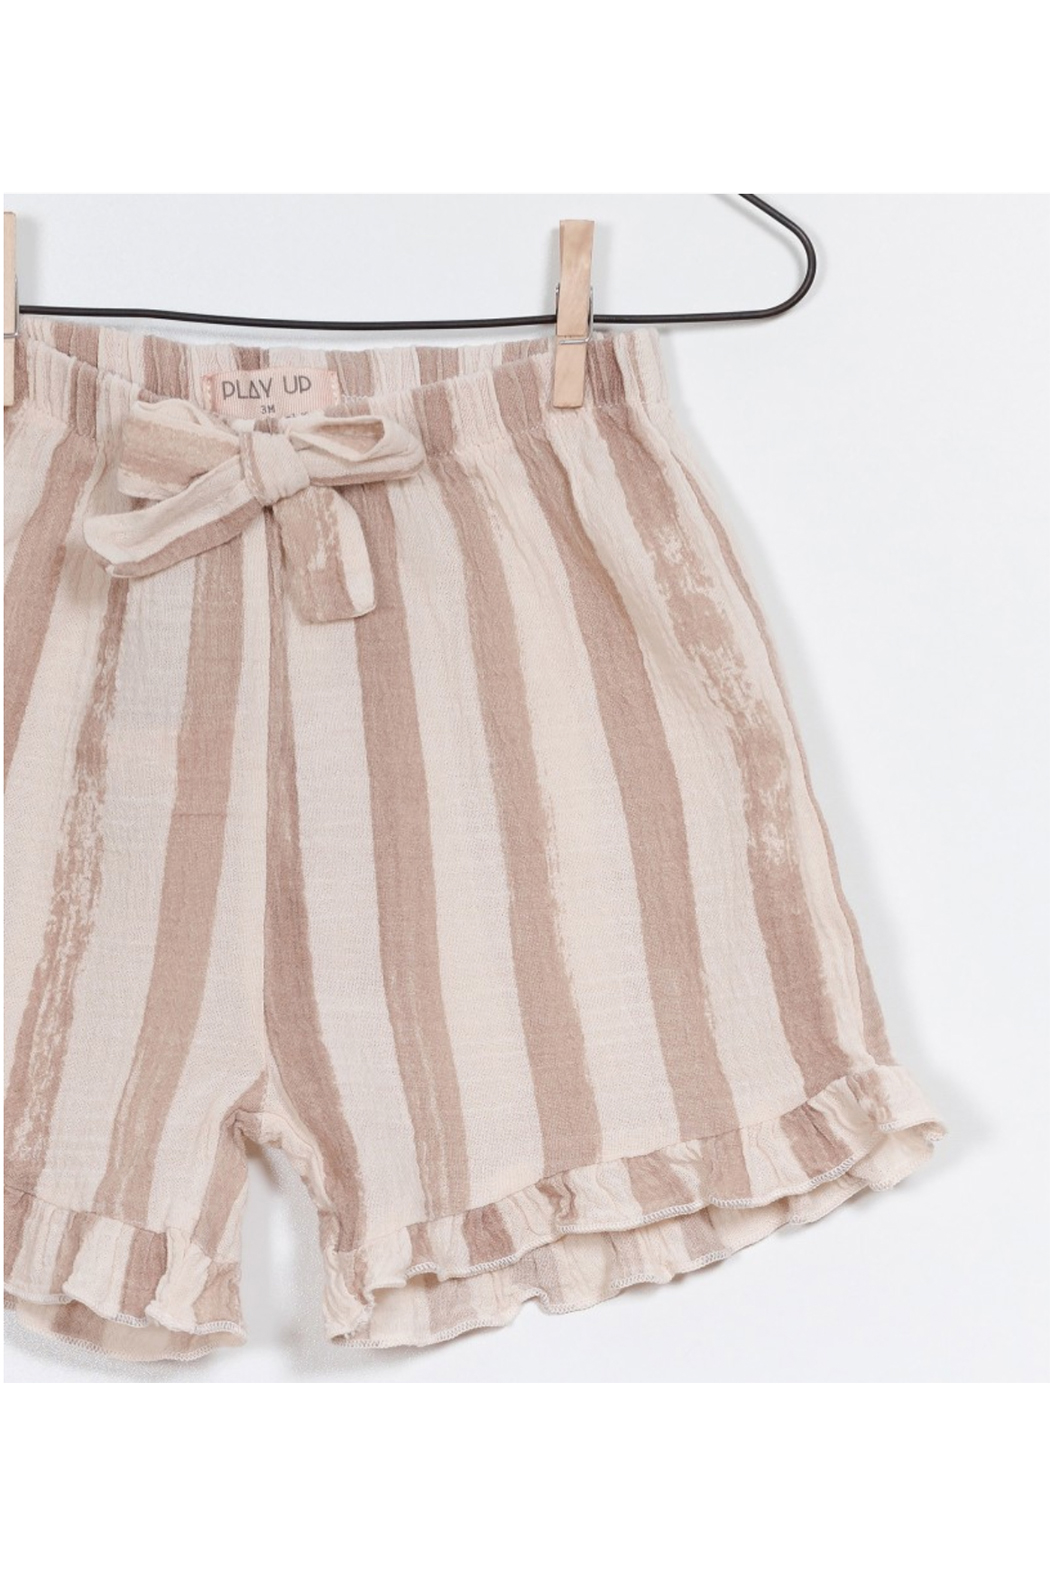 Play Up Printed Woven Shorts - Side Cropped Image